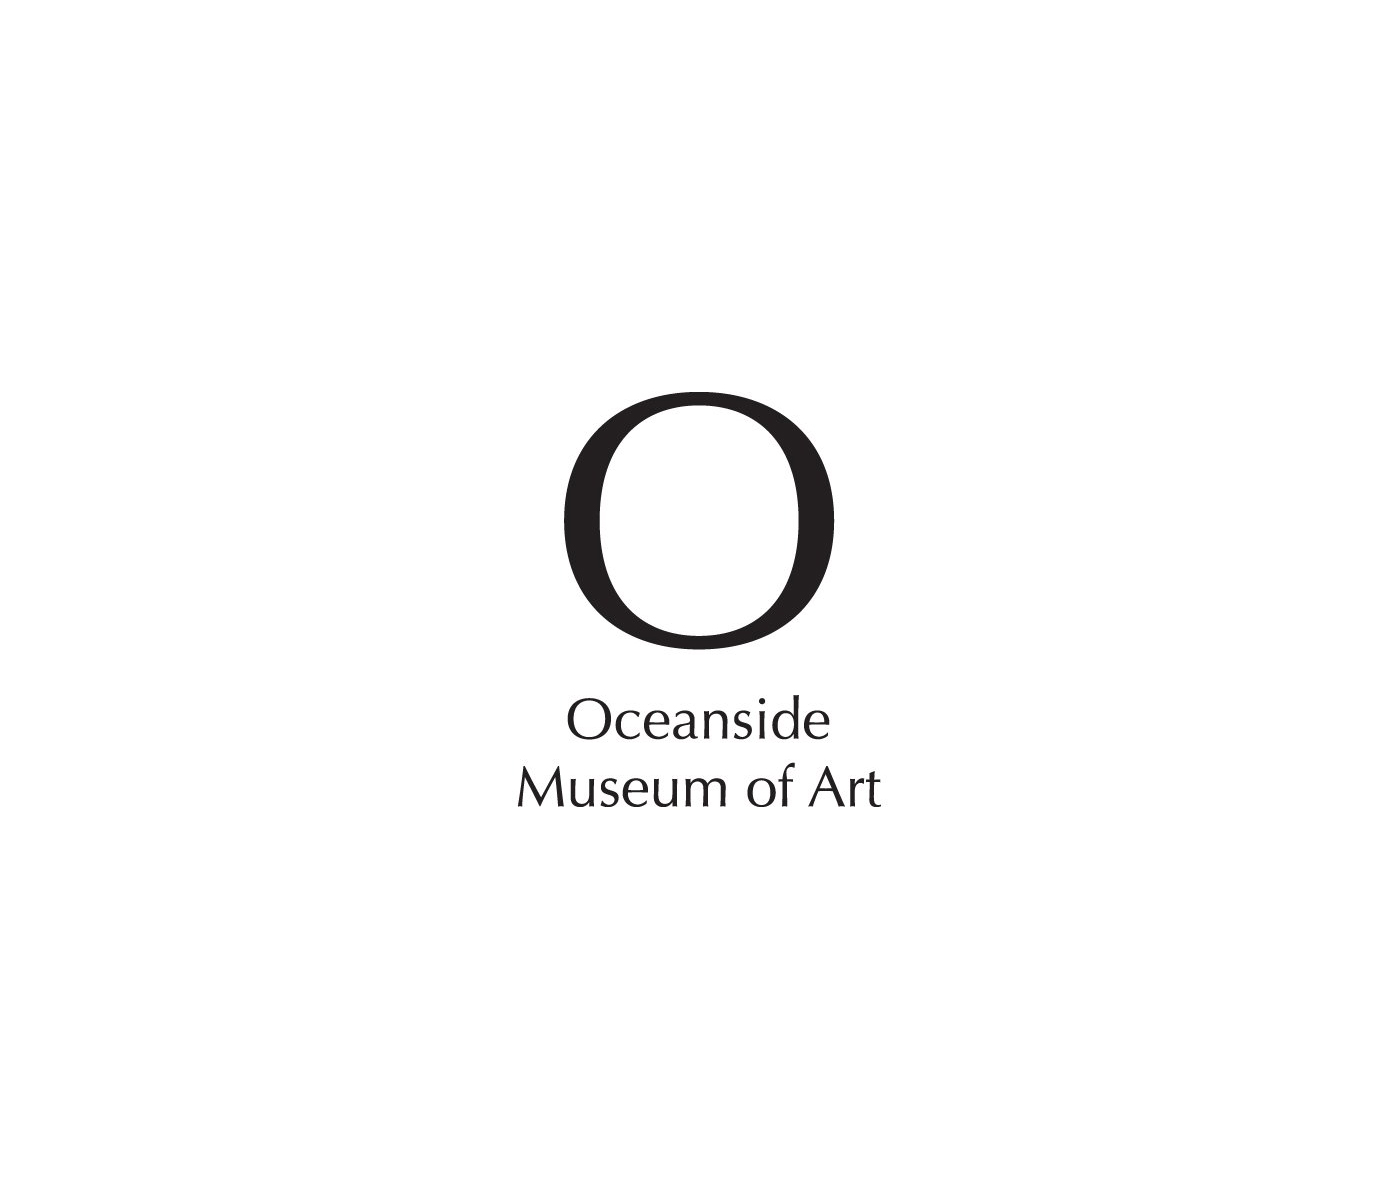 An exhibition at Oceanside Museum of Art - July 5 to November 2, 2014